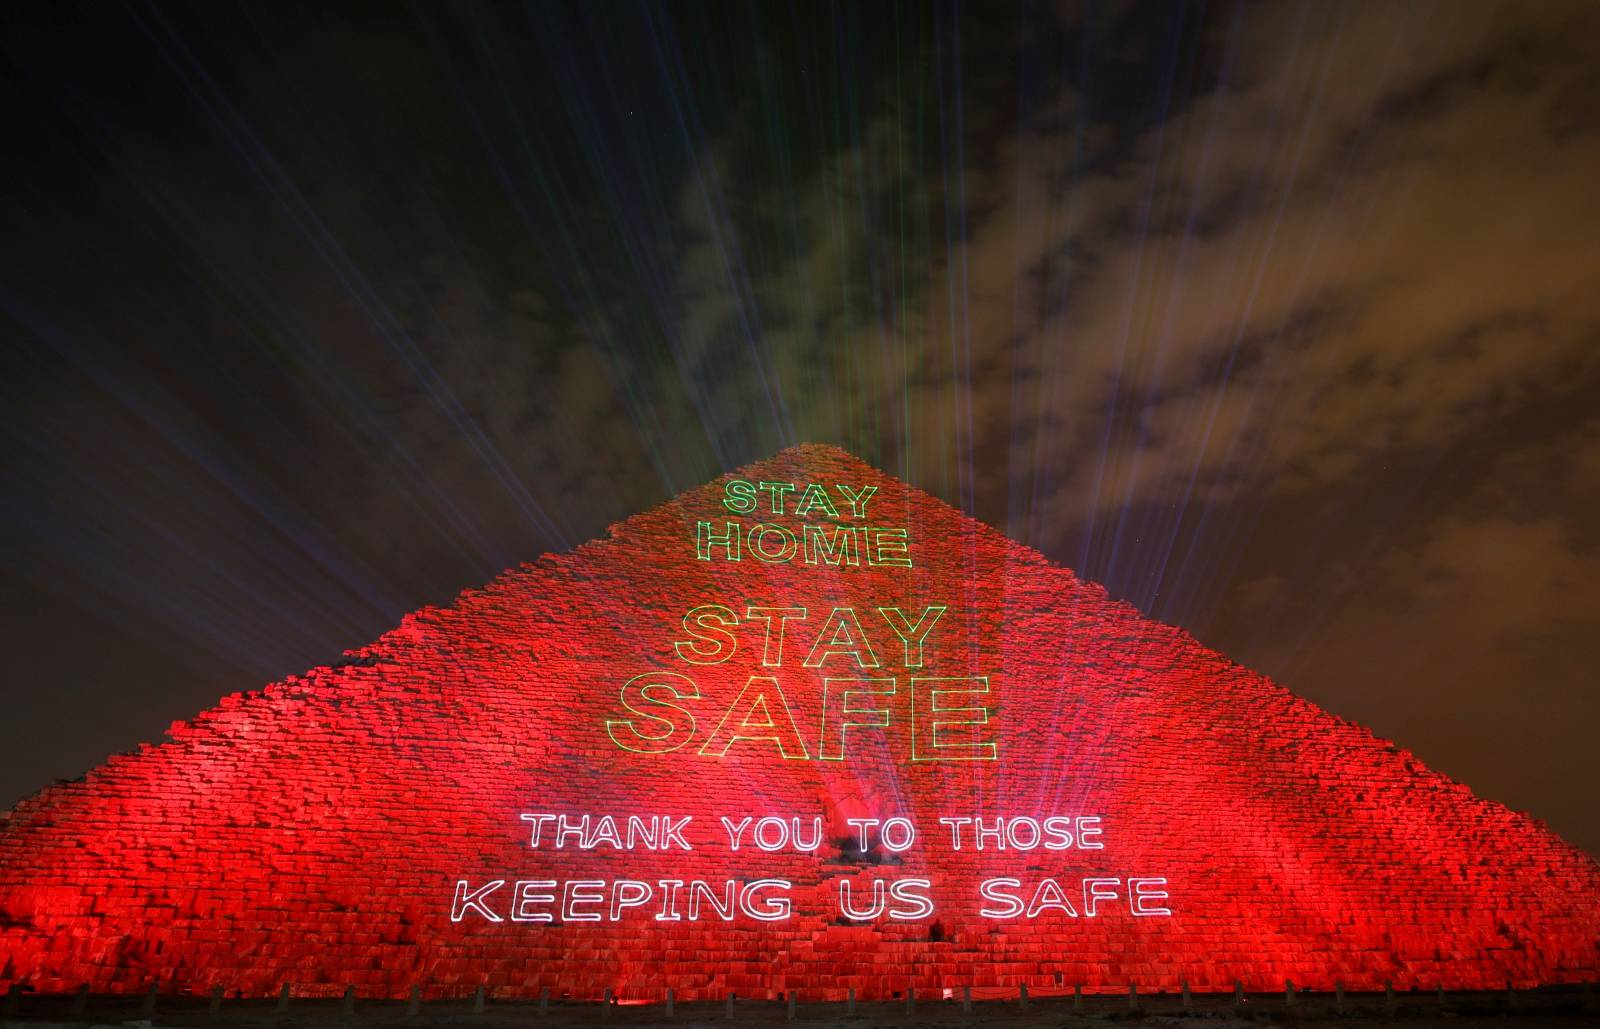 The pyramid of Khufu, the largest?of the?Giza pyramid complex,?is?illuminated with text encouraging?to stay home, in Giza